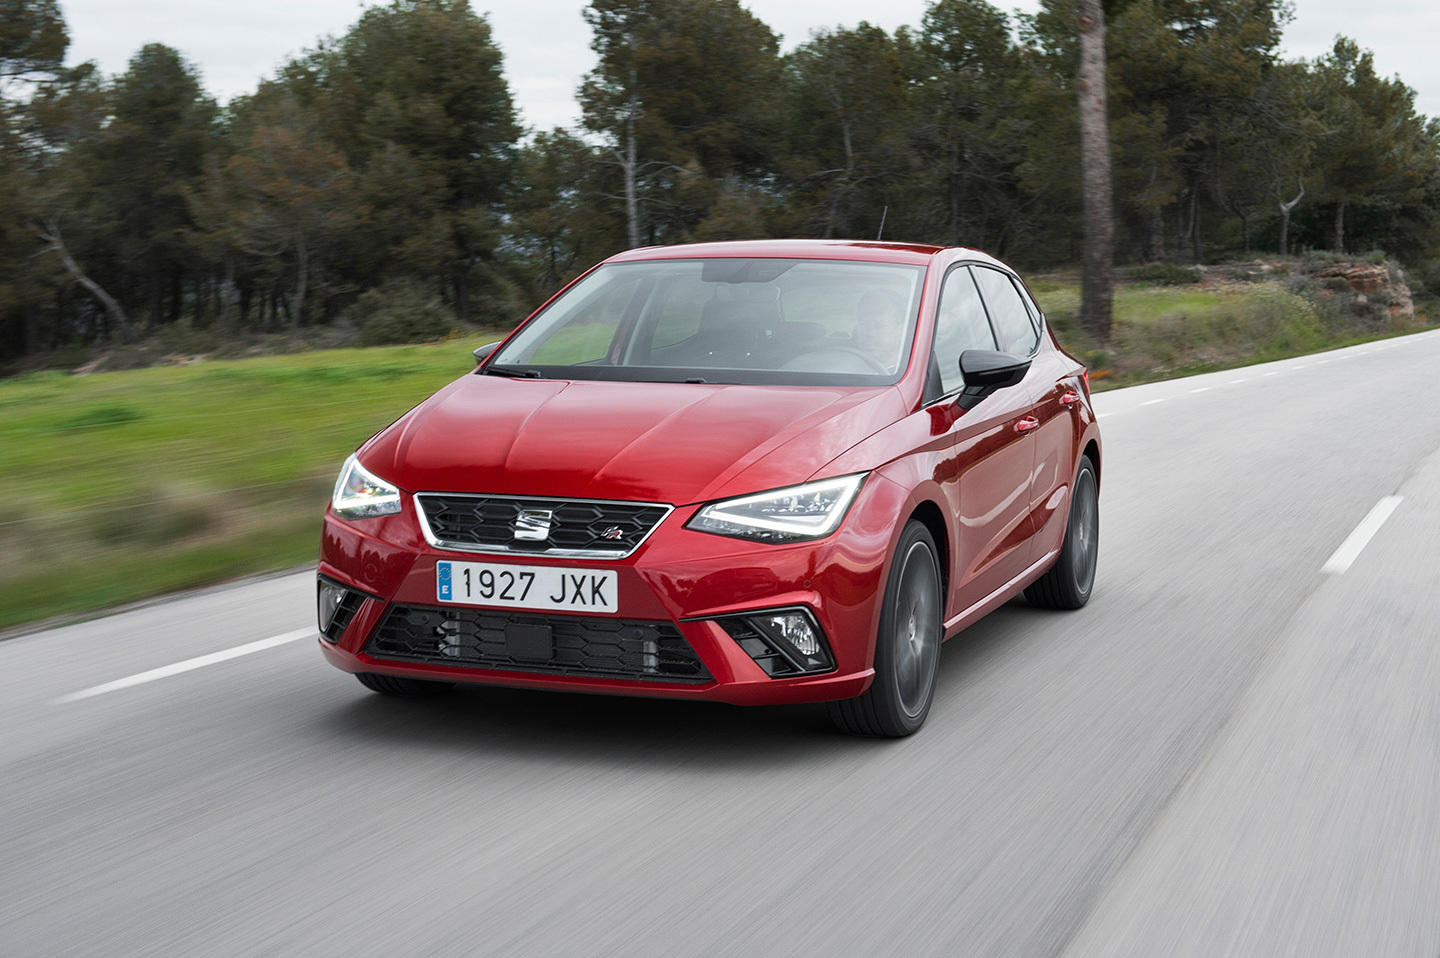 el seat ibiza fr con el motor 1 5 tsi de 150 cv es el ibiza m s deportivo porque no habr un. Black Bedroom Furniture Sets. Home Design Ideas